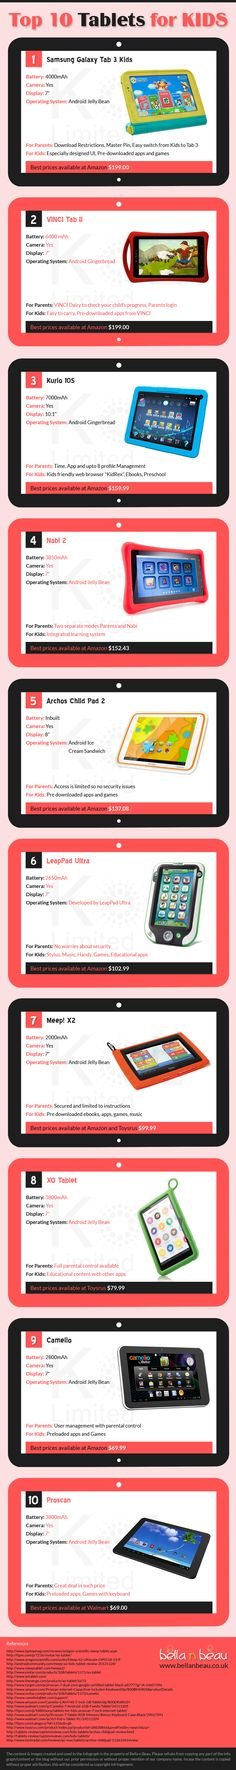 [Infographic] Which Tablet Would You Pick for Your Kid? - EdTechReview™ #edtech #etrplc #satchat #1to1   #byod   #olpc   #byot   #edtrend   #21stedchat   #21cl   #mobilelearning   #whatisschool   #edapps